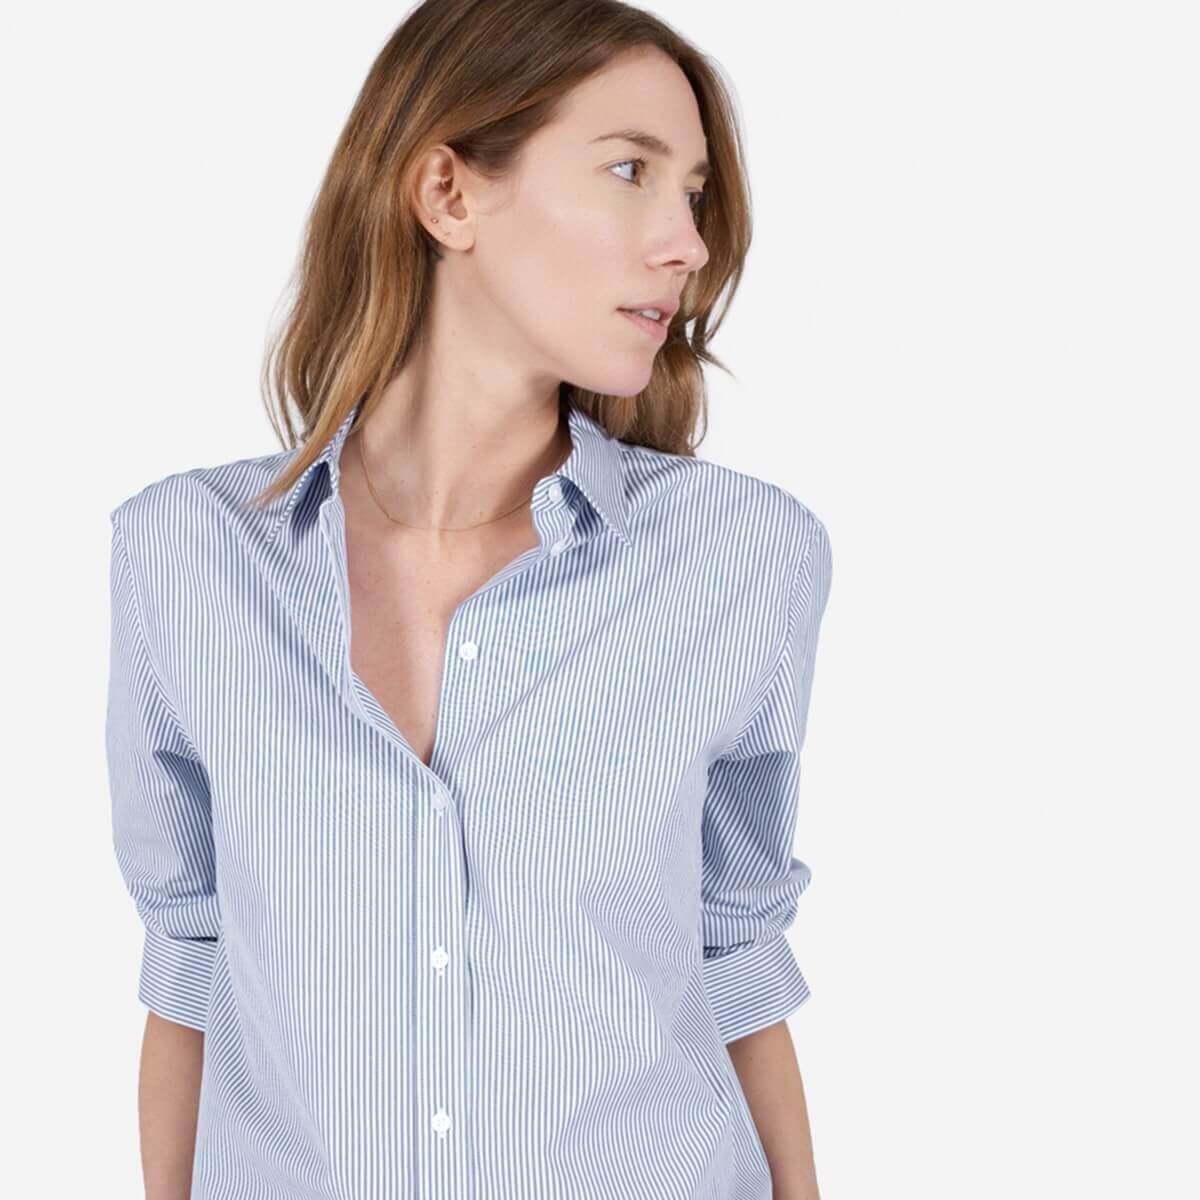 The Relaxed Poplin Shirt